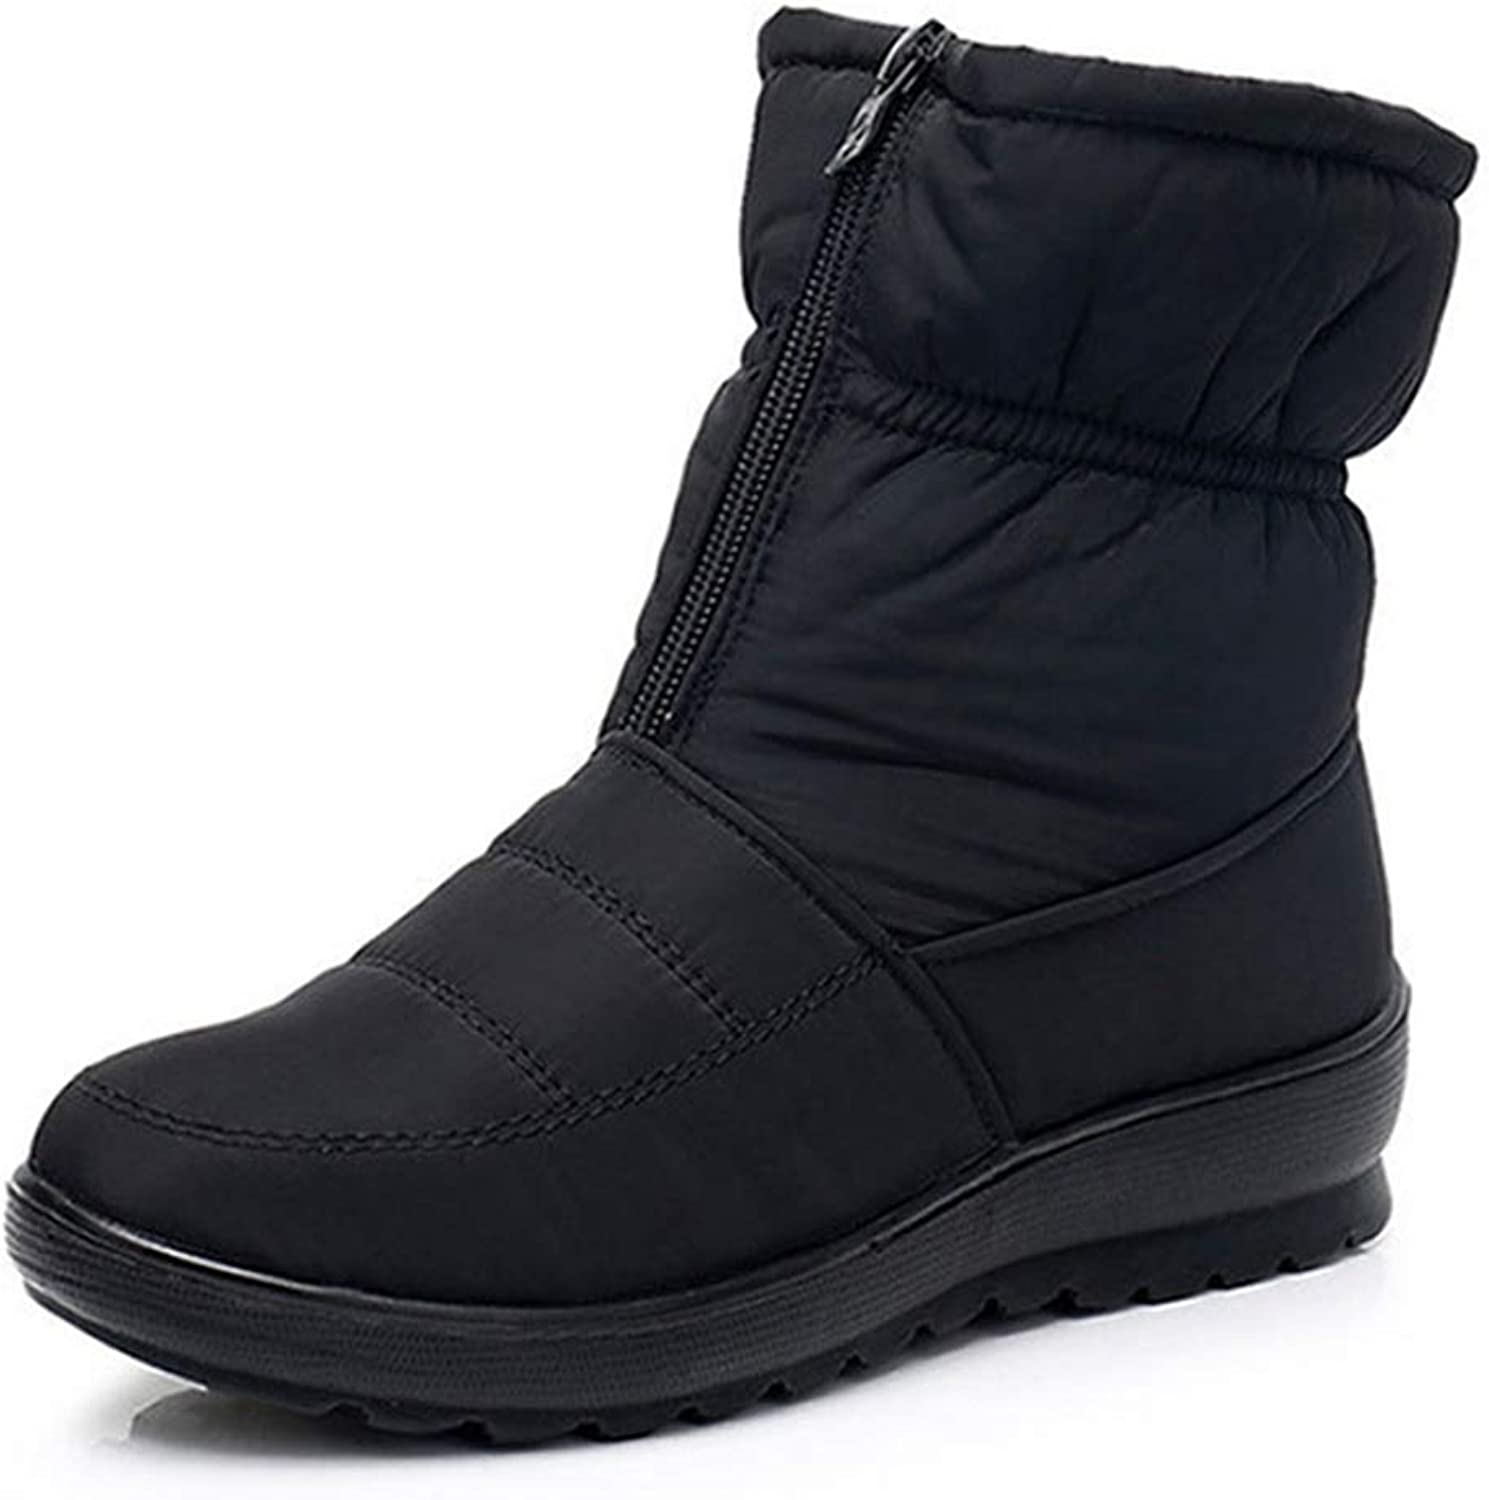 Fay Waters Snow Boots Womens Winter Anti-Slip Ankle Booties Waterproof Warm Cotton Lined Sneaker